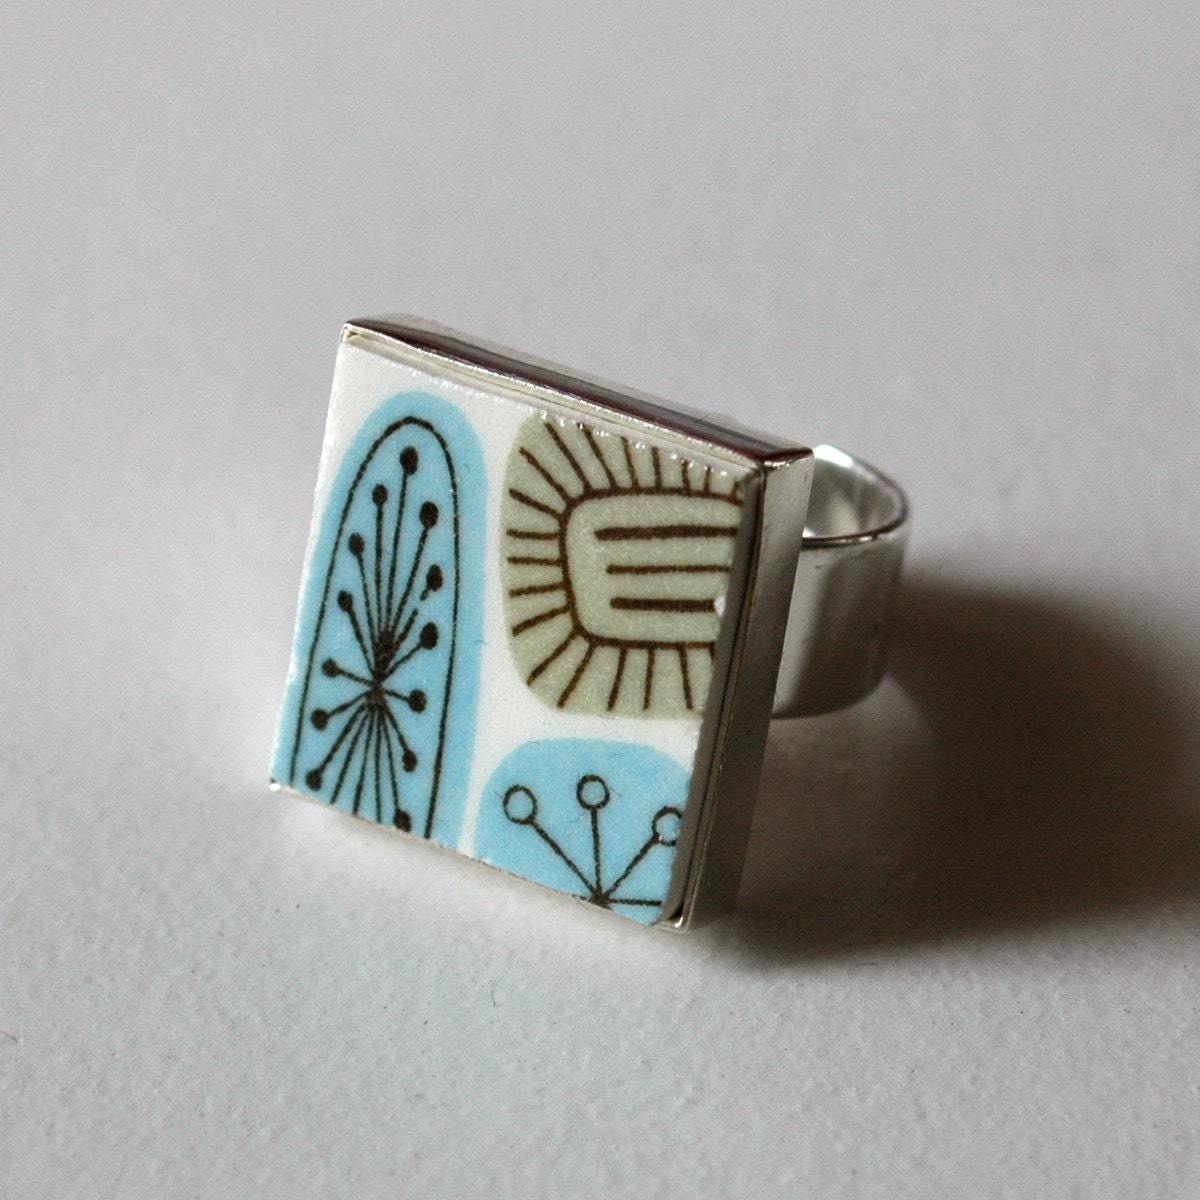 New Square Broken Plate Ring blue and green 50s atomic